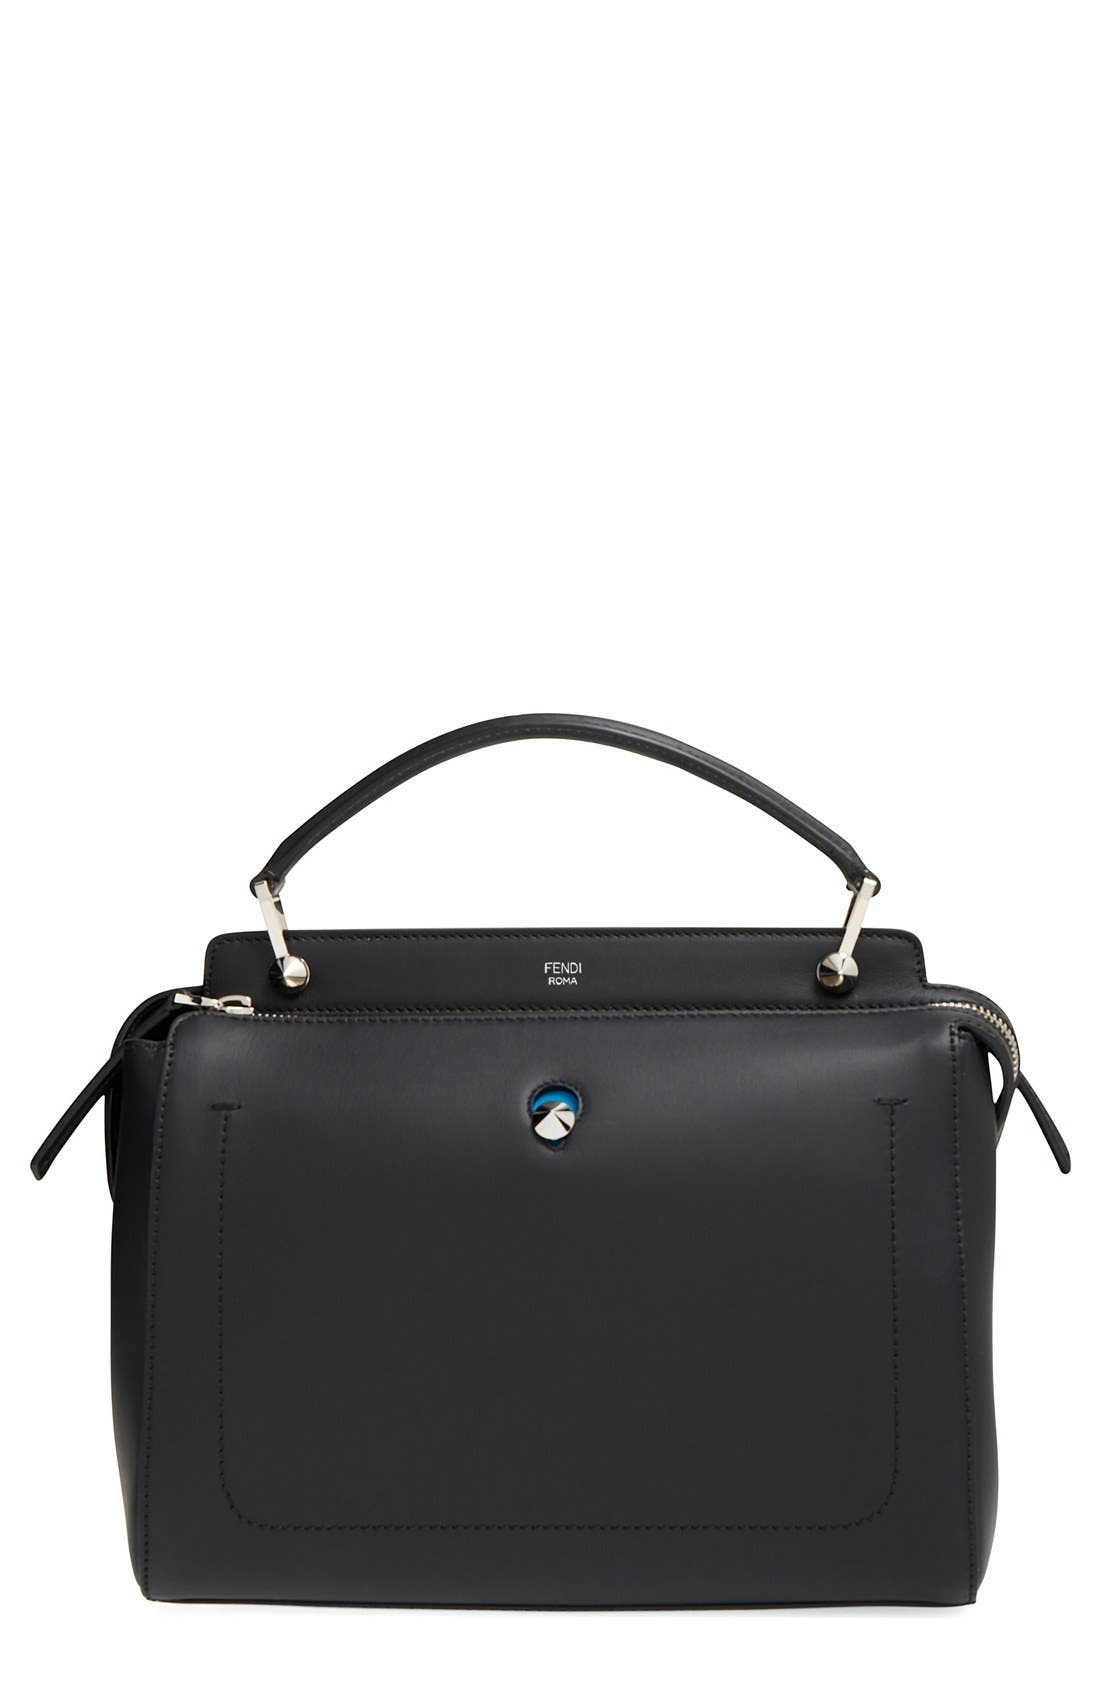 FENDI 'DOTCOM' Leather Satchel